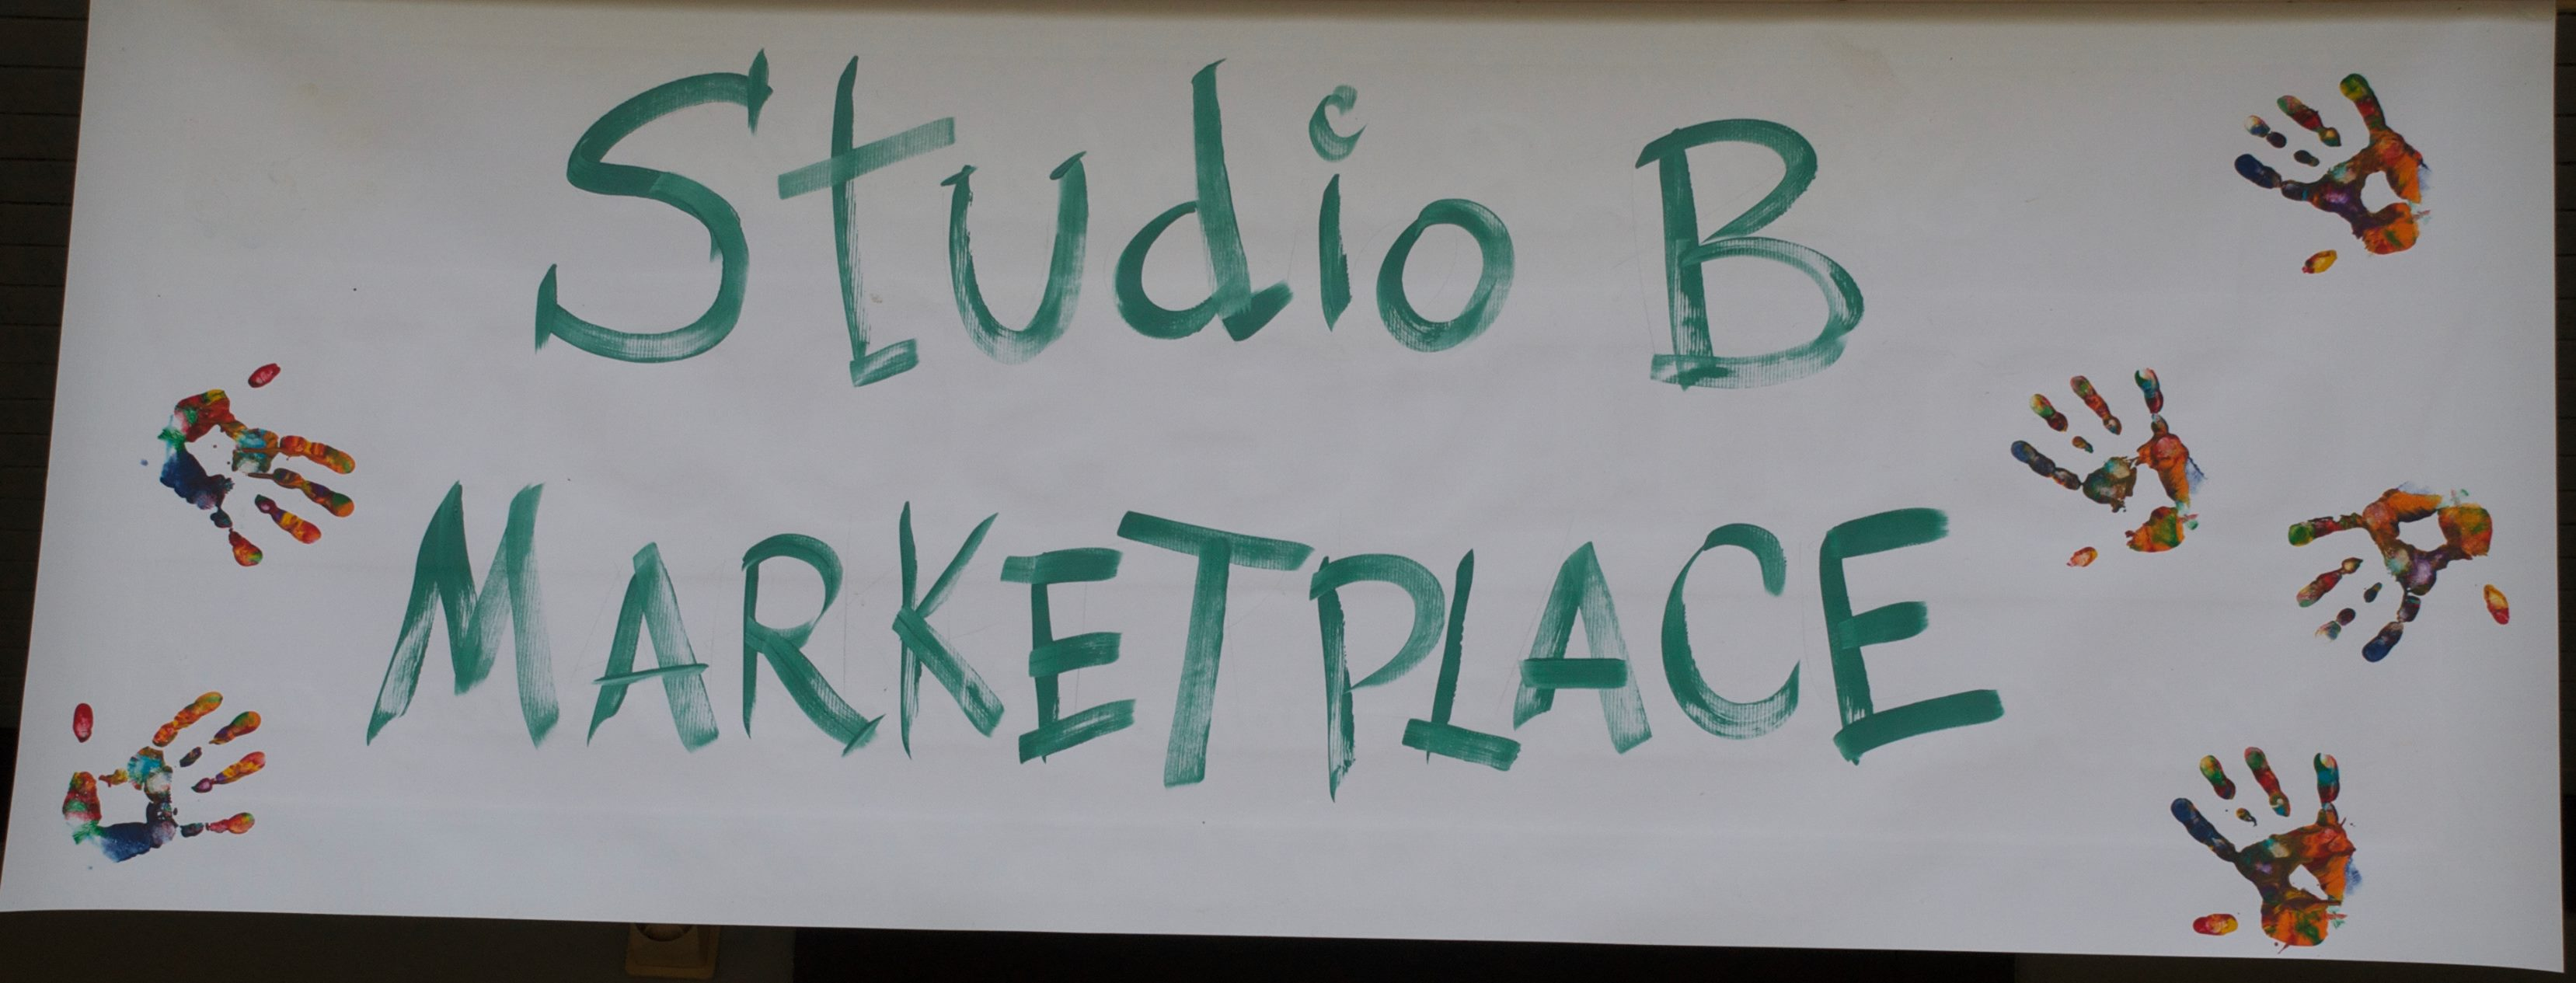 Studio B Marketplace